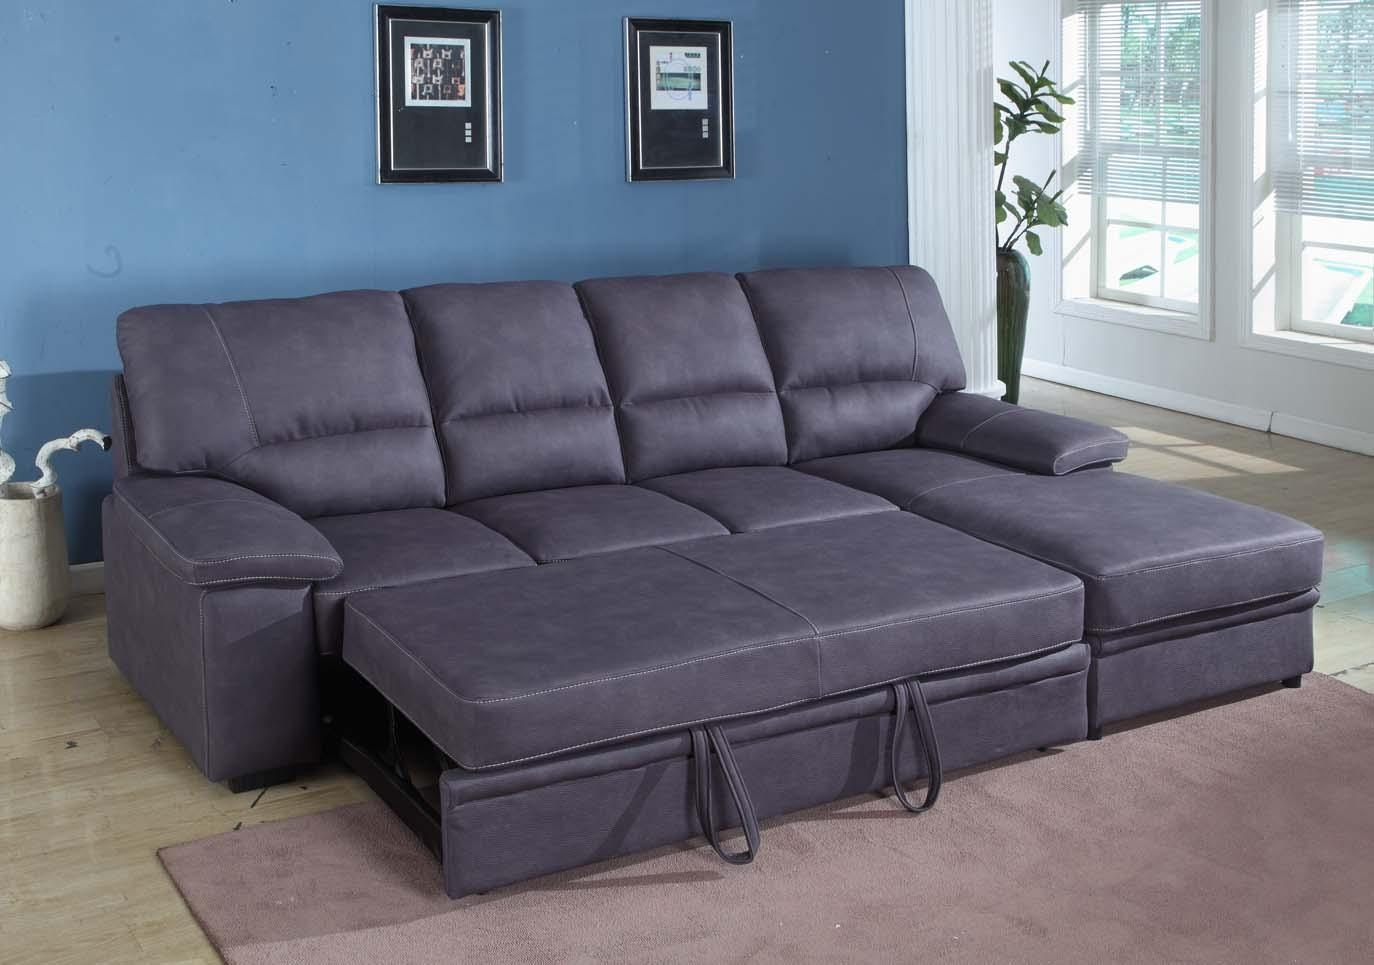 Gray Sectional Sofa | Home Designjohn With King Size Sleeper Sofa Sectional  (Photo 15 Of